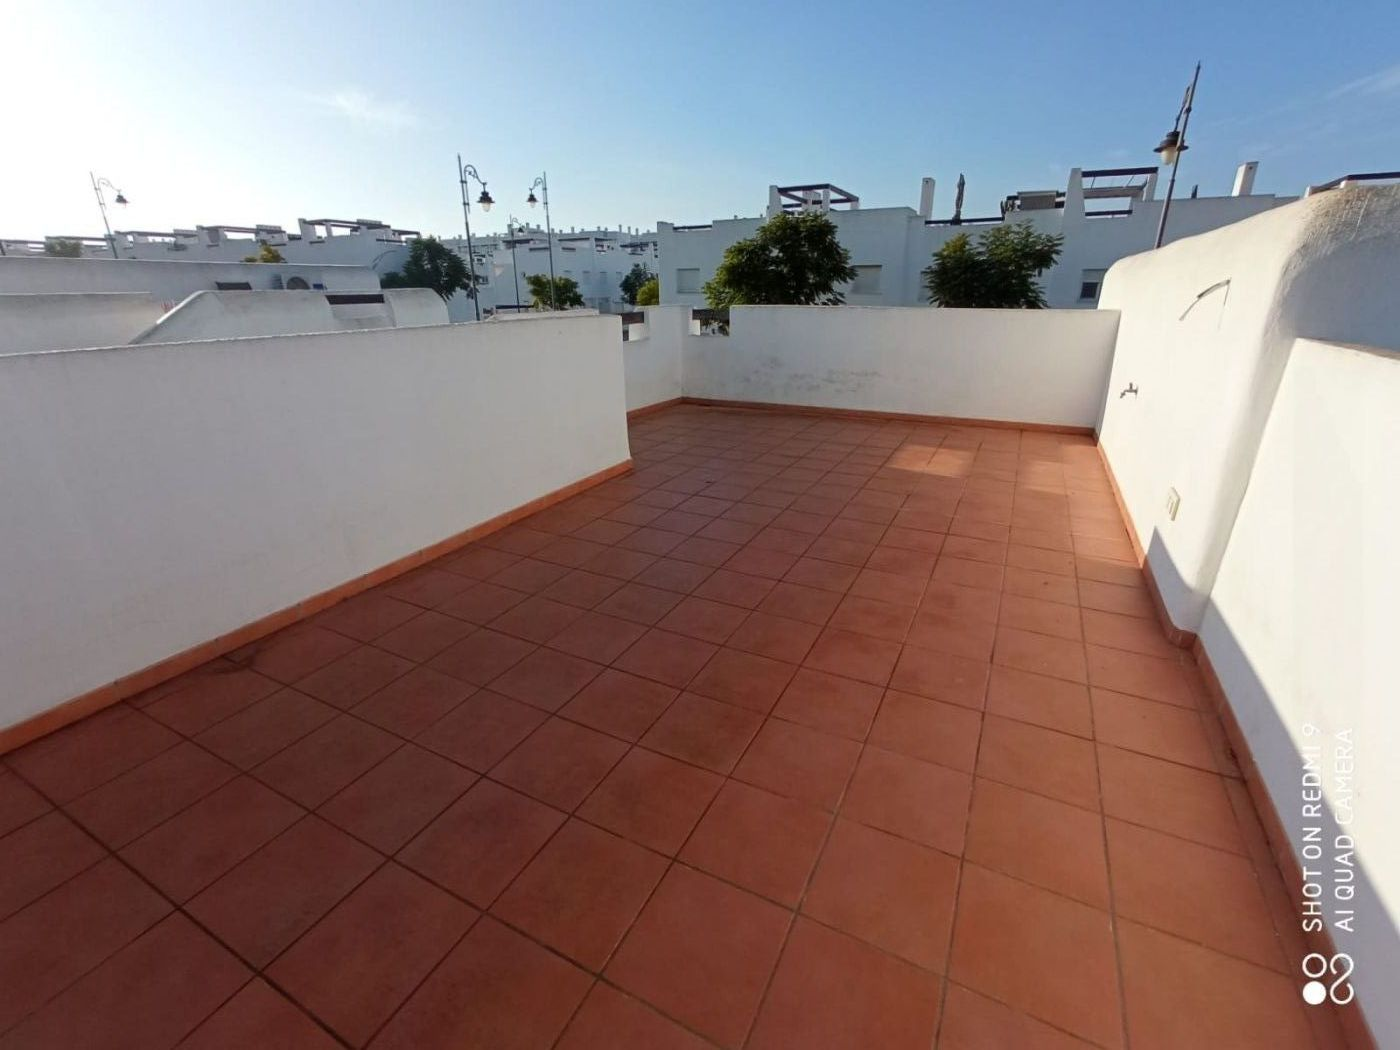 Gallery Image 5 of Villa Jana in need of some TLC for sale at bargain price